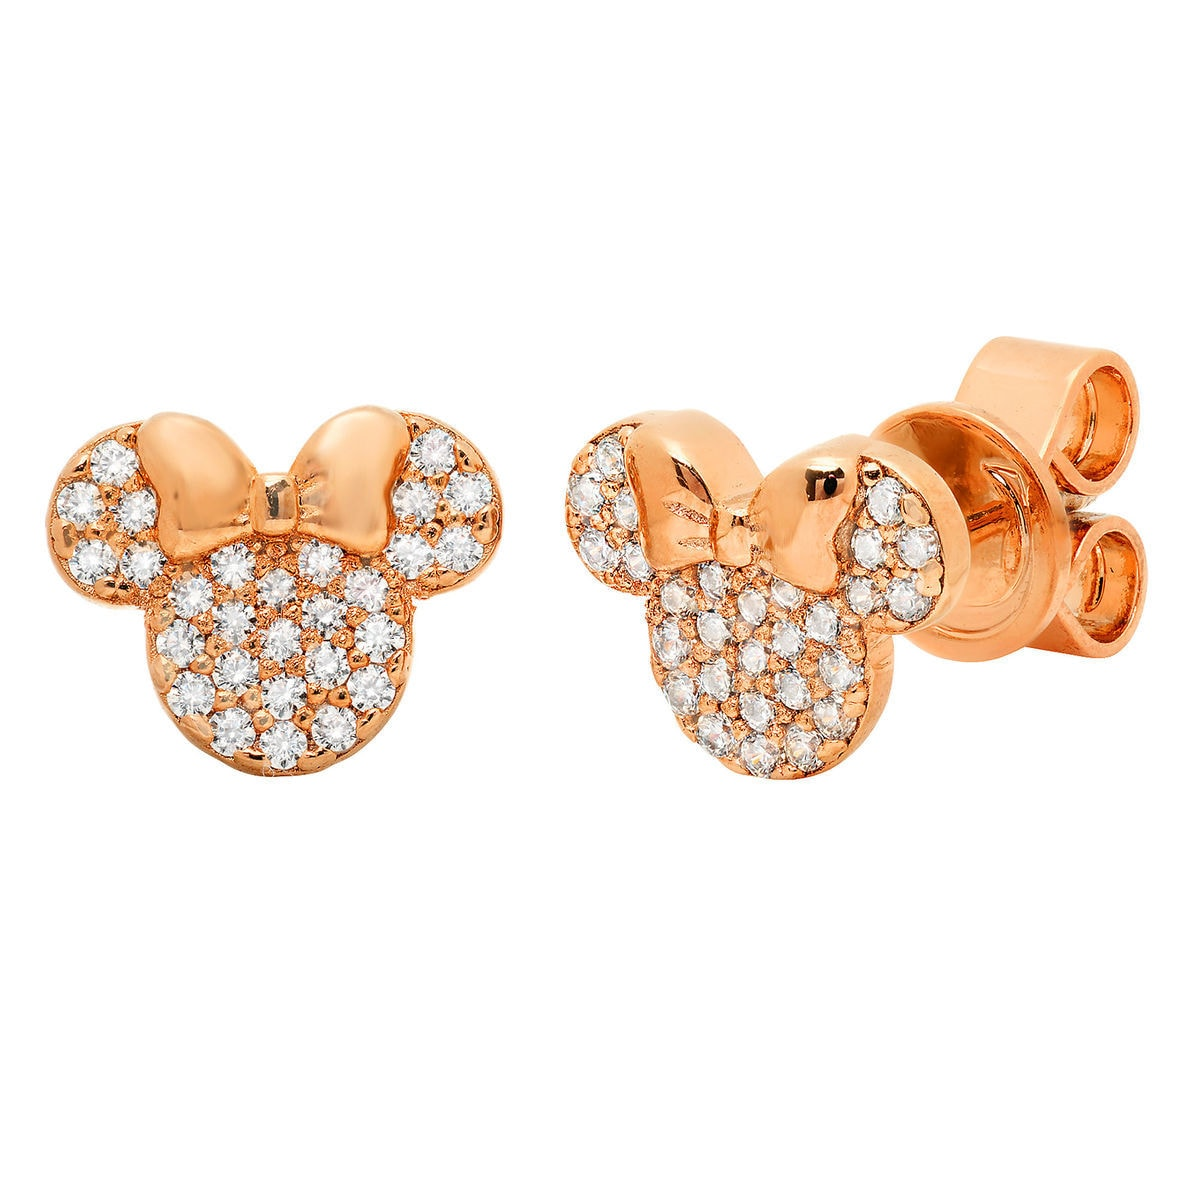 Product Image Of Minnie Mouse Icon Stud Earrings By Crislu Rose Gold 1